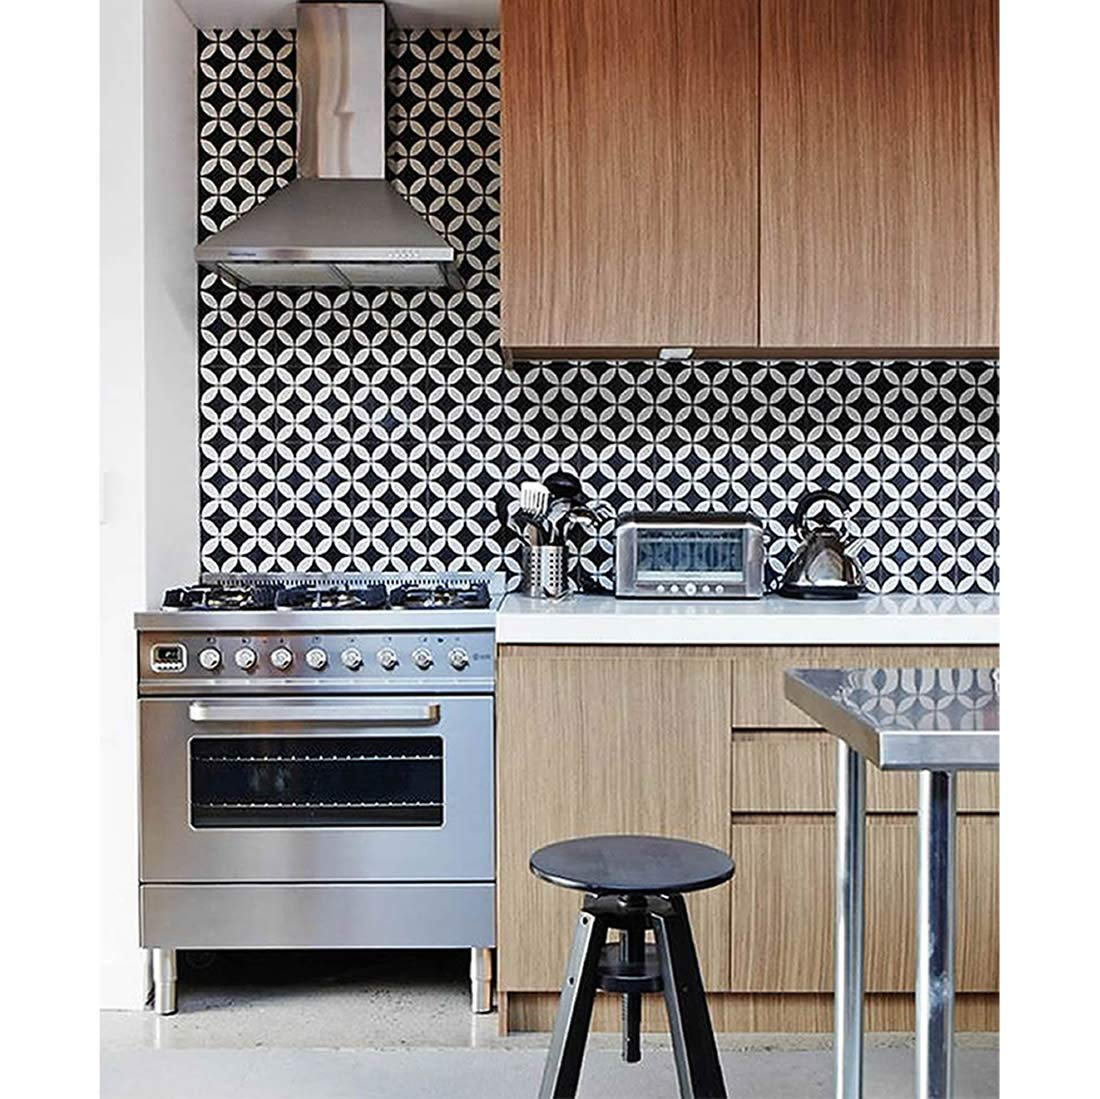 Moroccan Mosaic & Tile House CTP07-07 Amlo 8''x8'' Handmade Cement Tile in Whilte and Black (Pack of 12), White